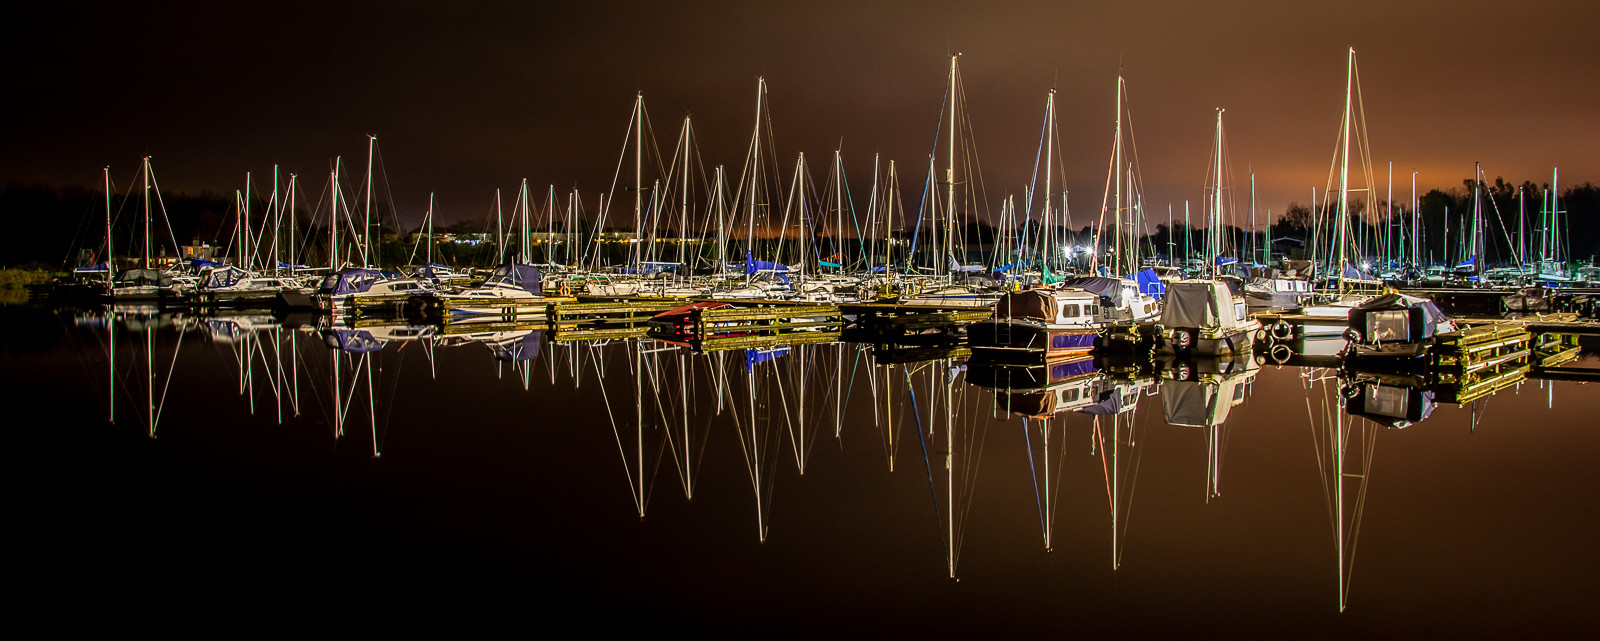 'On Reflection' by Conor McCorry (12 marks)  -  Focus Photography Club